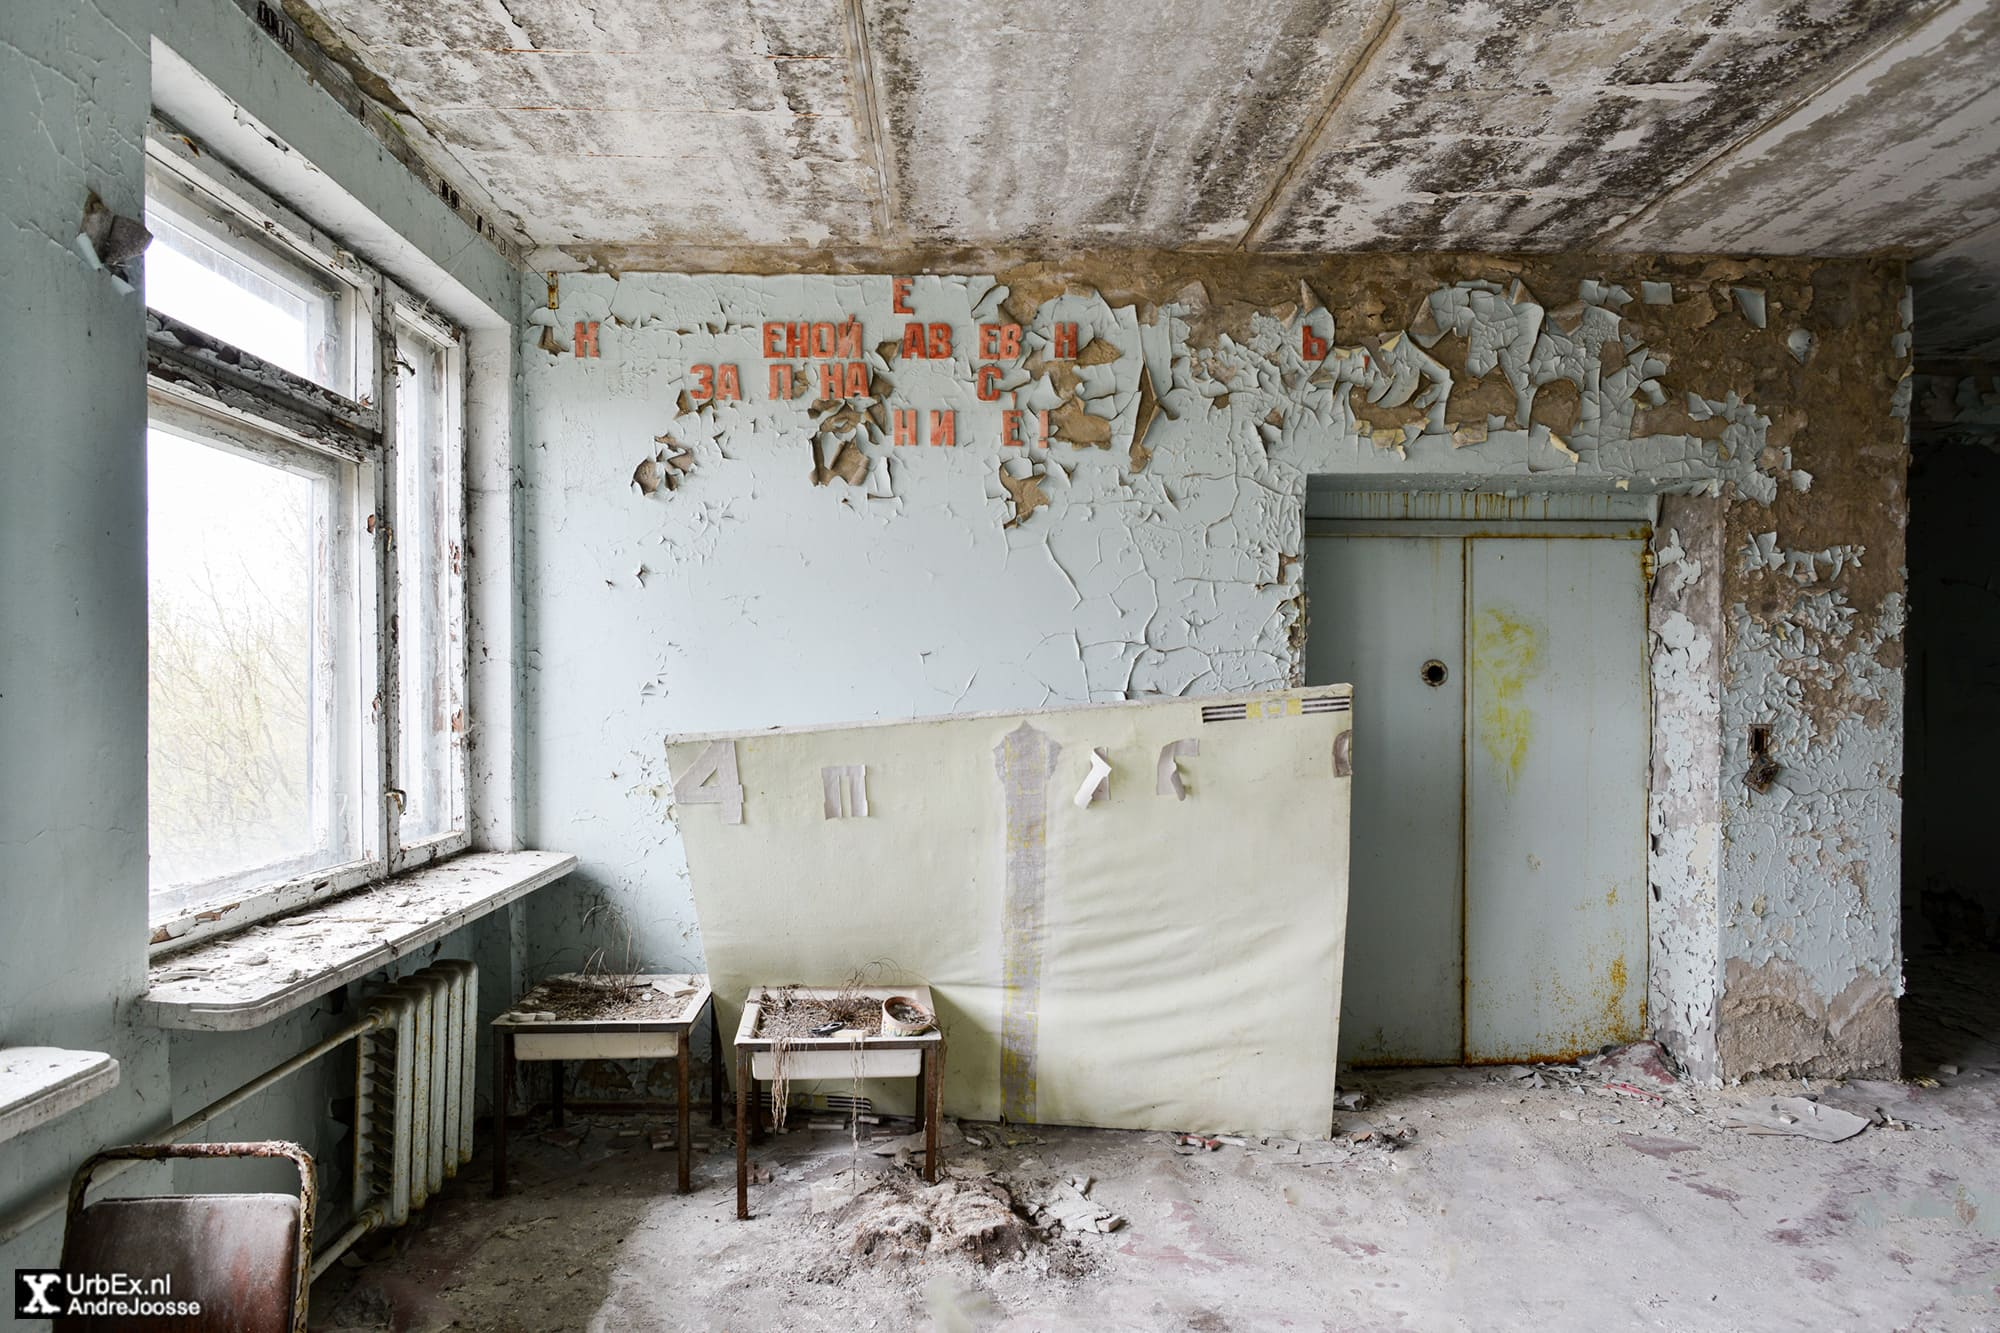 Central hallway of the abandoned hospital